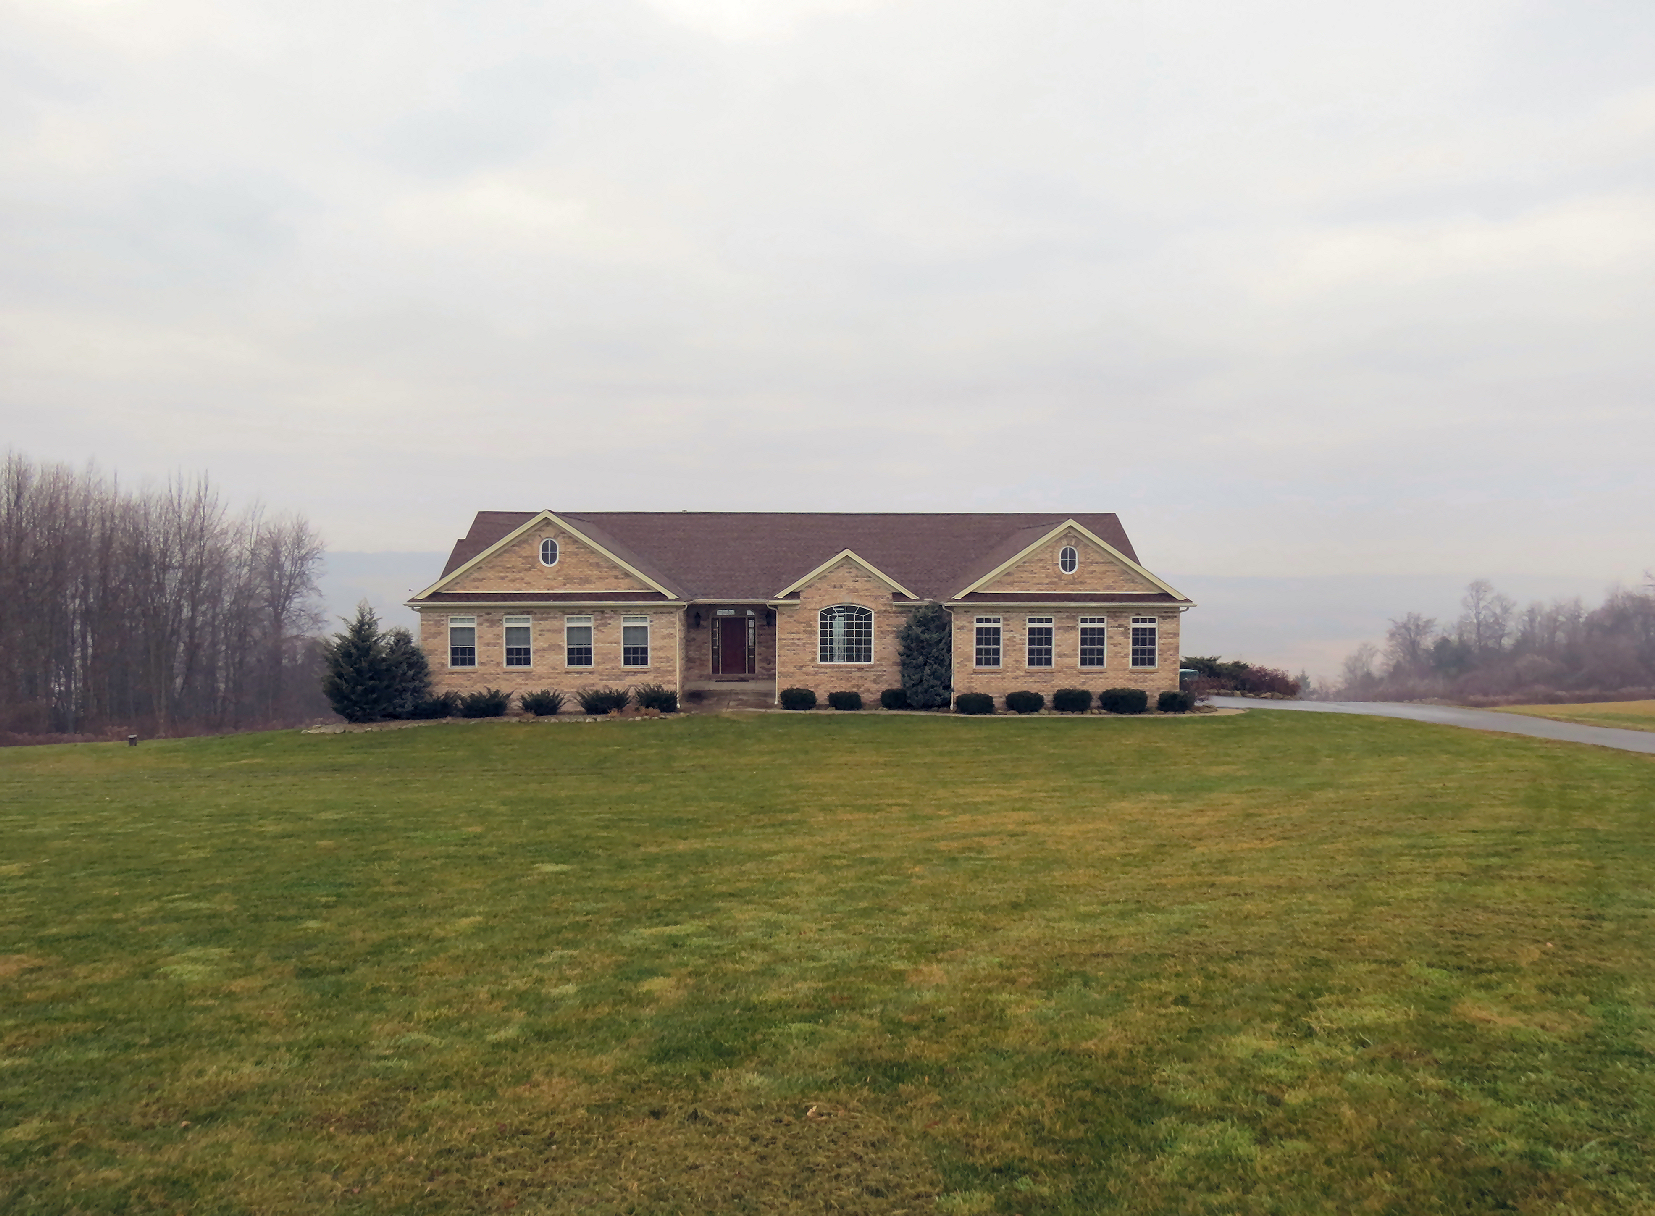 10105 Pettis Road, Meadville, Pennsylvania 16335